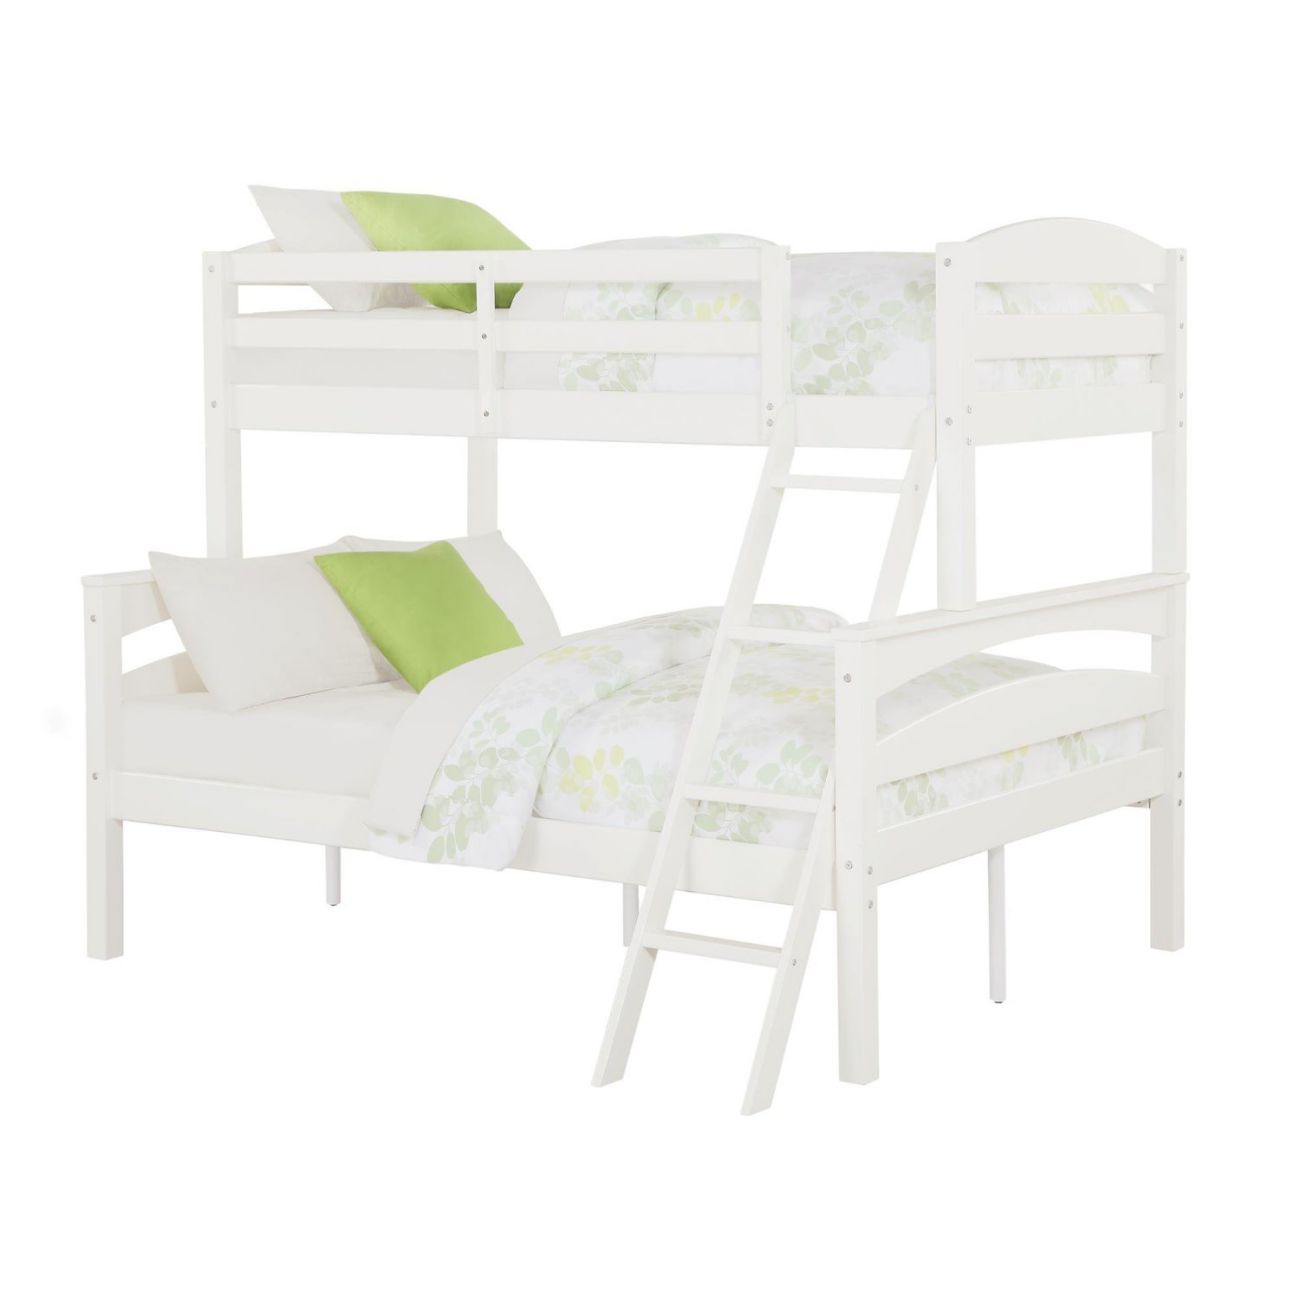 Dorel Living Brady Twin over Full Solid Wood Kid's Bunk Bed with Ladder, White - Color: White - Size: Full